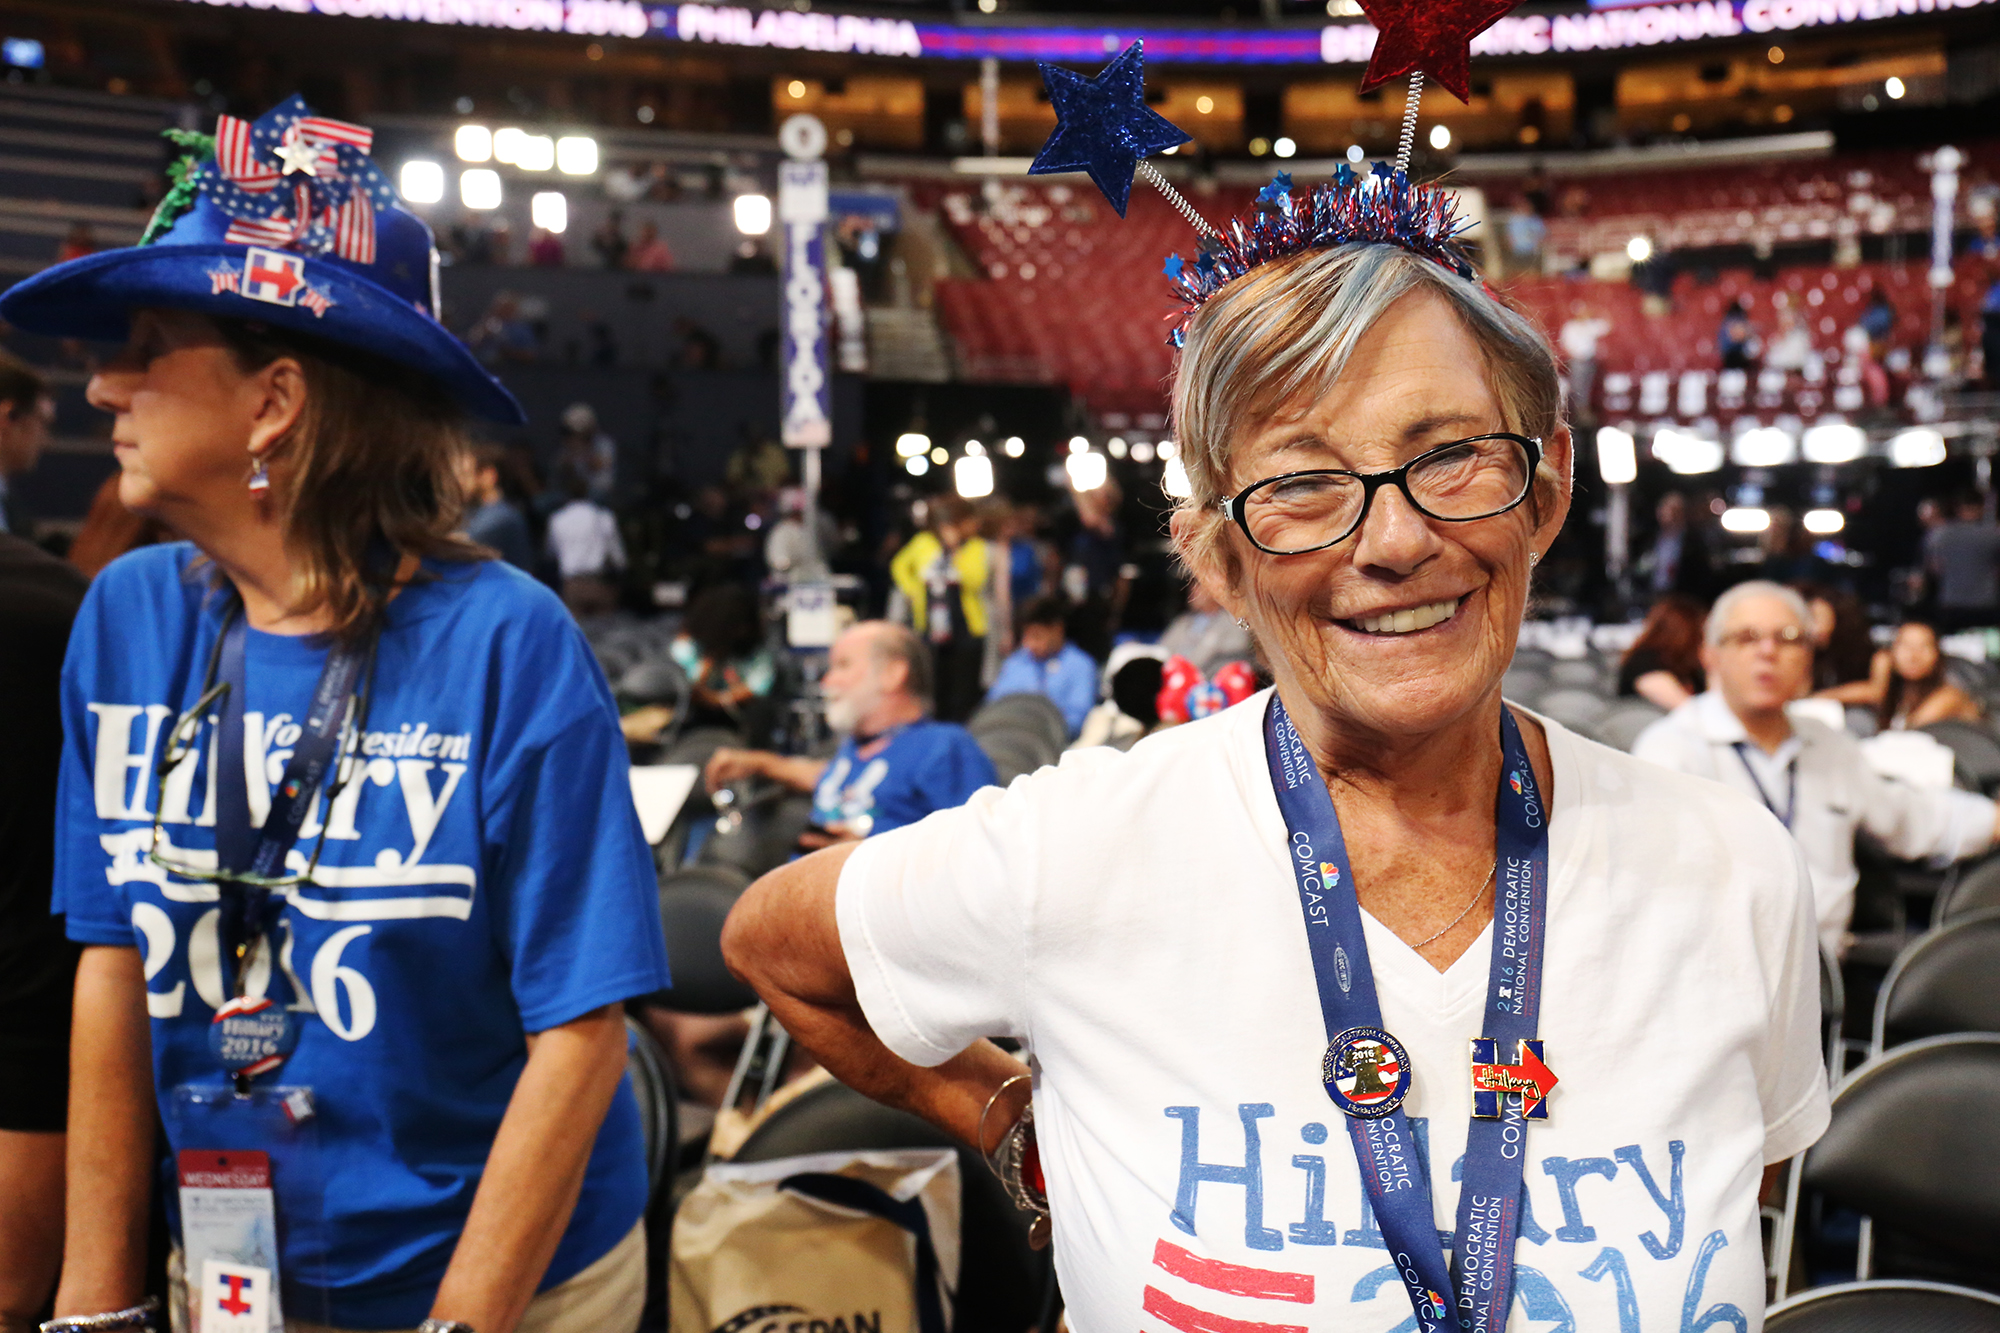 Wanda Francis, 70, is a Florida delegate, a retired American Express employee and a Hillary supporter. Photo by Abbey Oldham